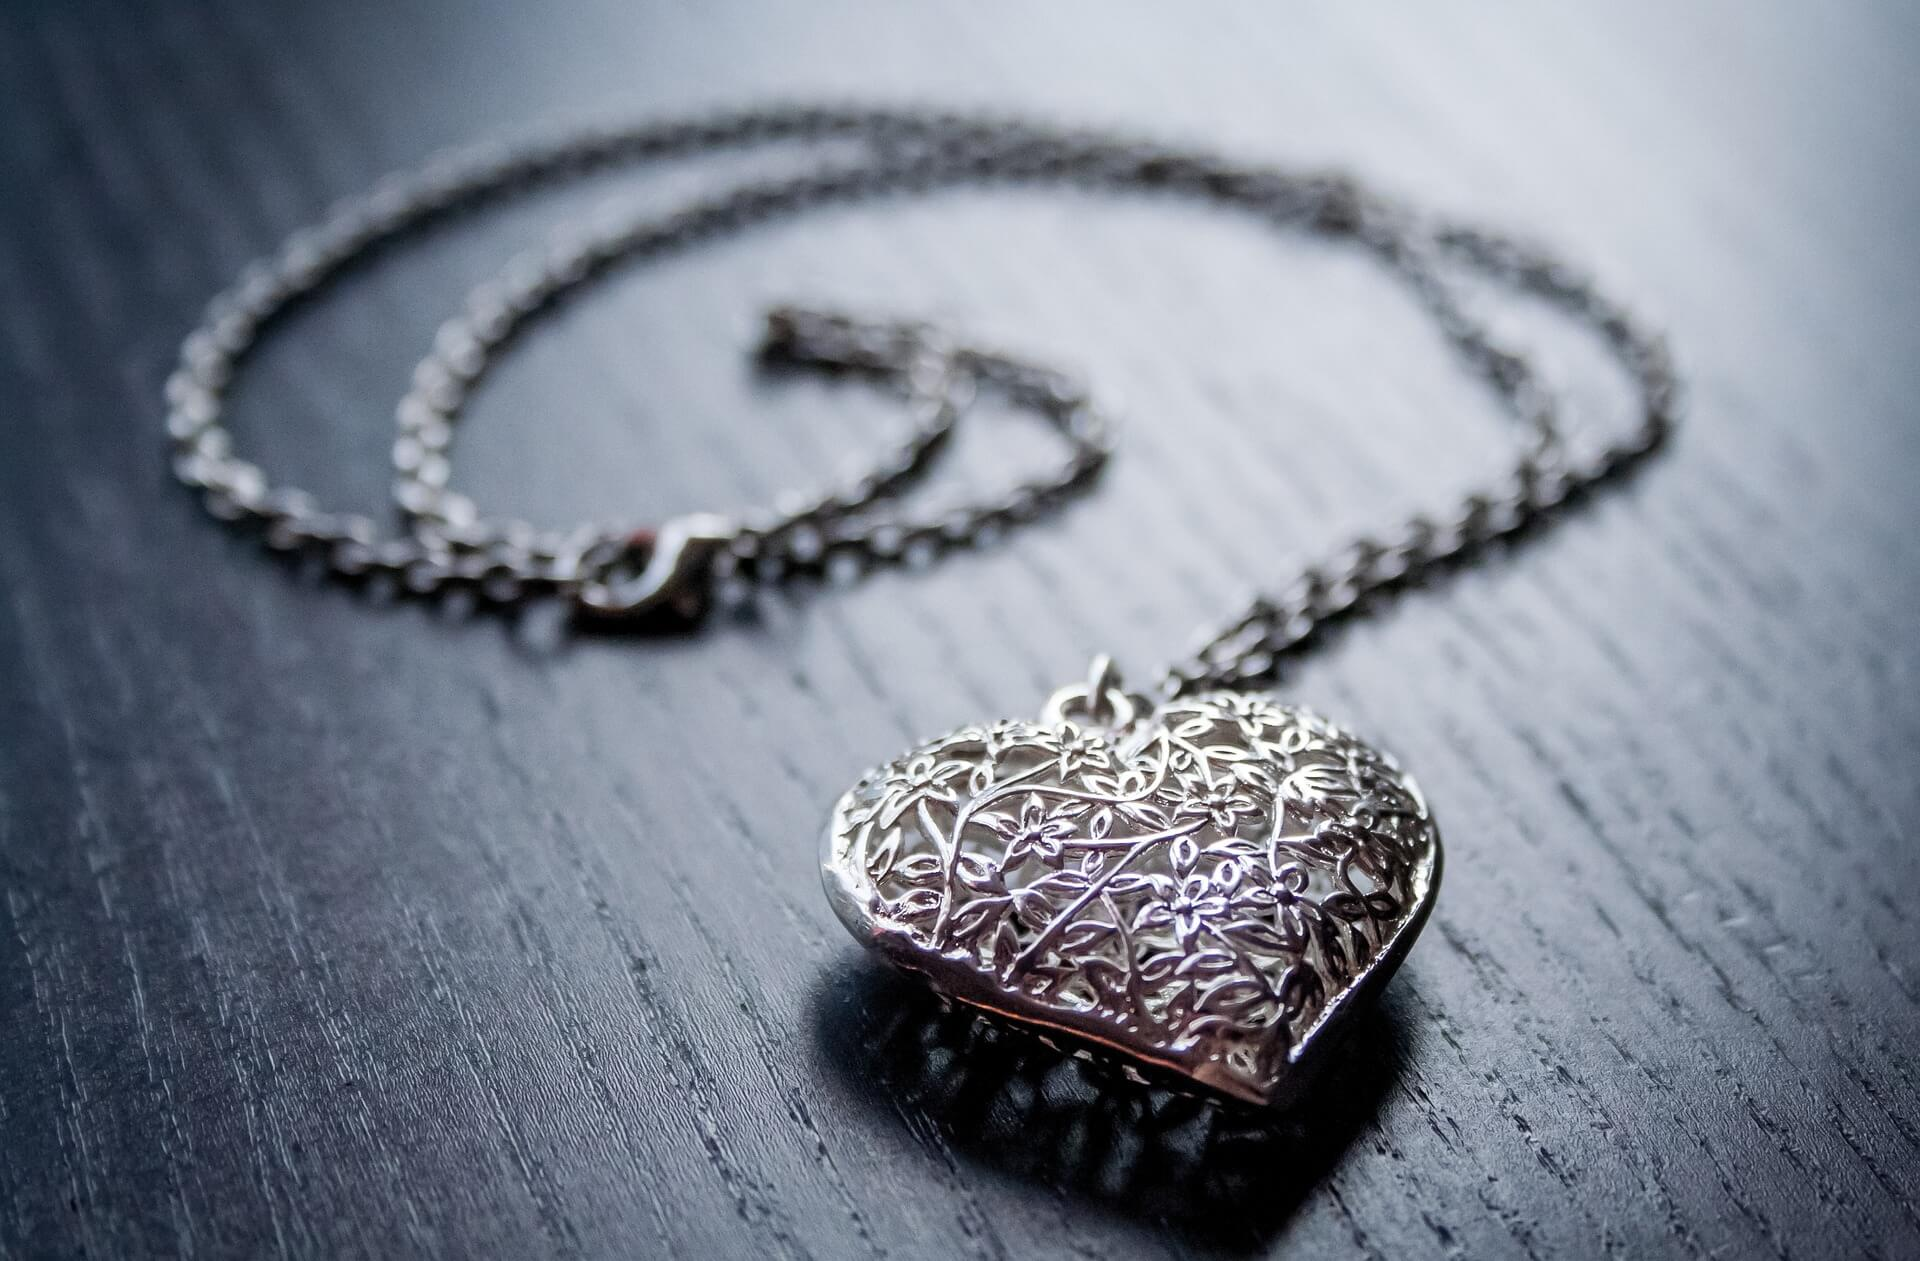 11 Heart Shaped Gold Pendant Designs To Impress Your Loved One